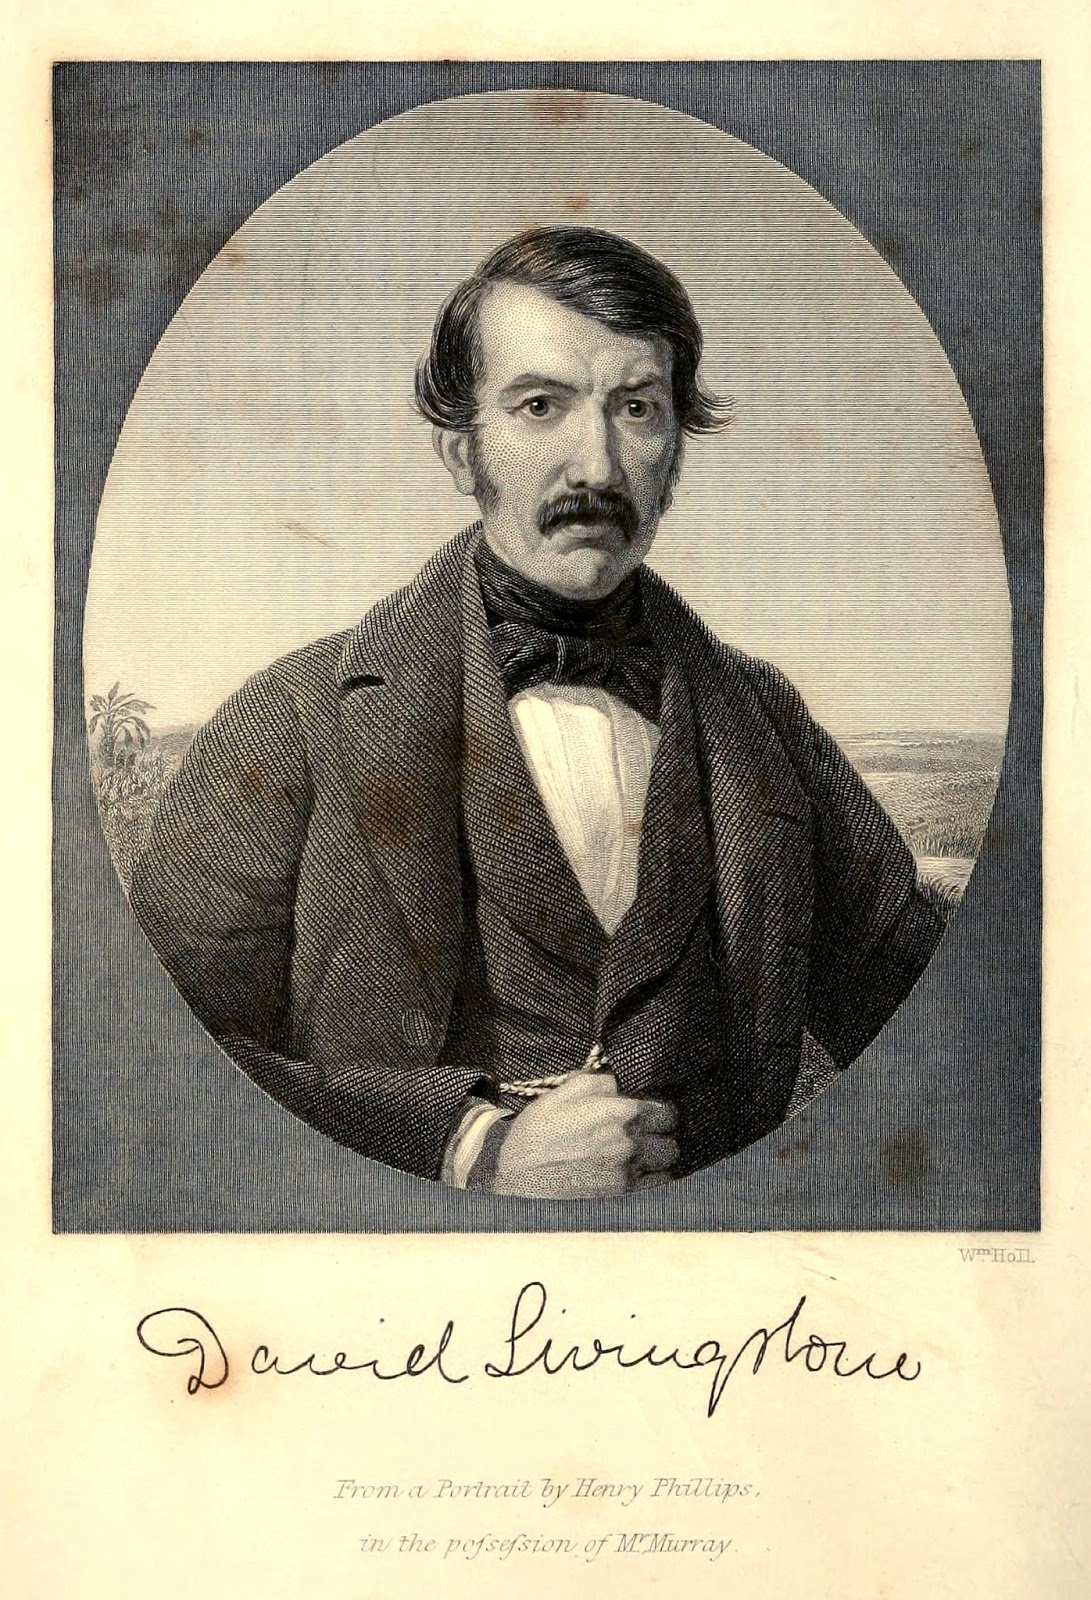 a biography of david livingston David livingstone's biography view biography of david livingstone with birthdate, birthplace, birthname and height at famous biography.